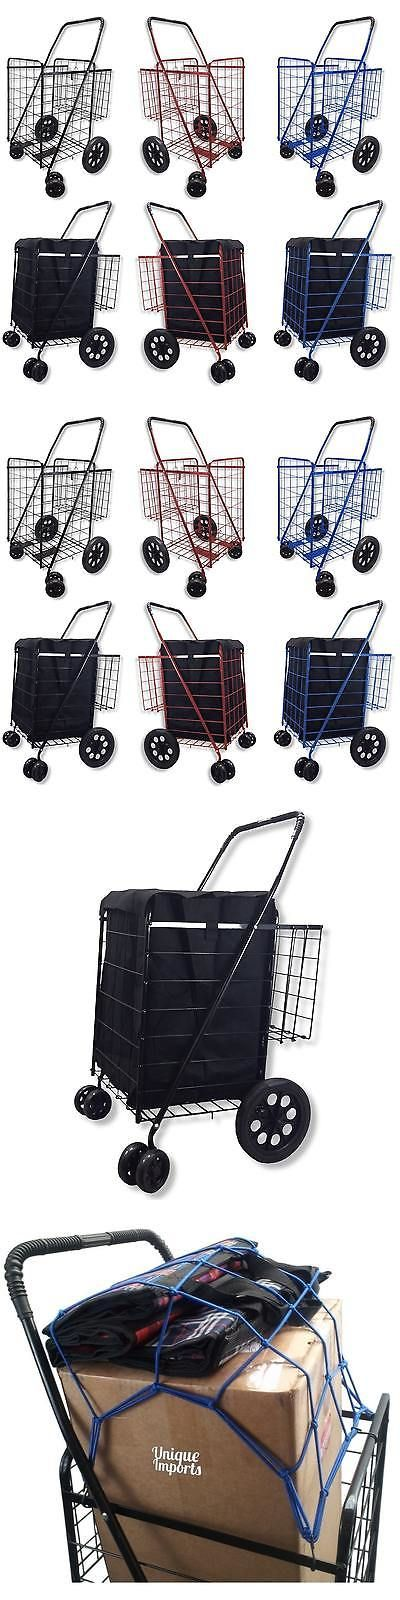 Laundry Bags 43516: Black Folding Double-Basket Shopping Cart With Swivel Wheels And Blue Liner -> BUY IT NOW ONLY: $47.99 on eBay!